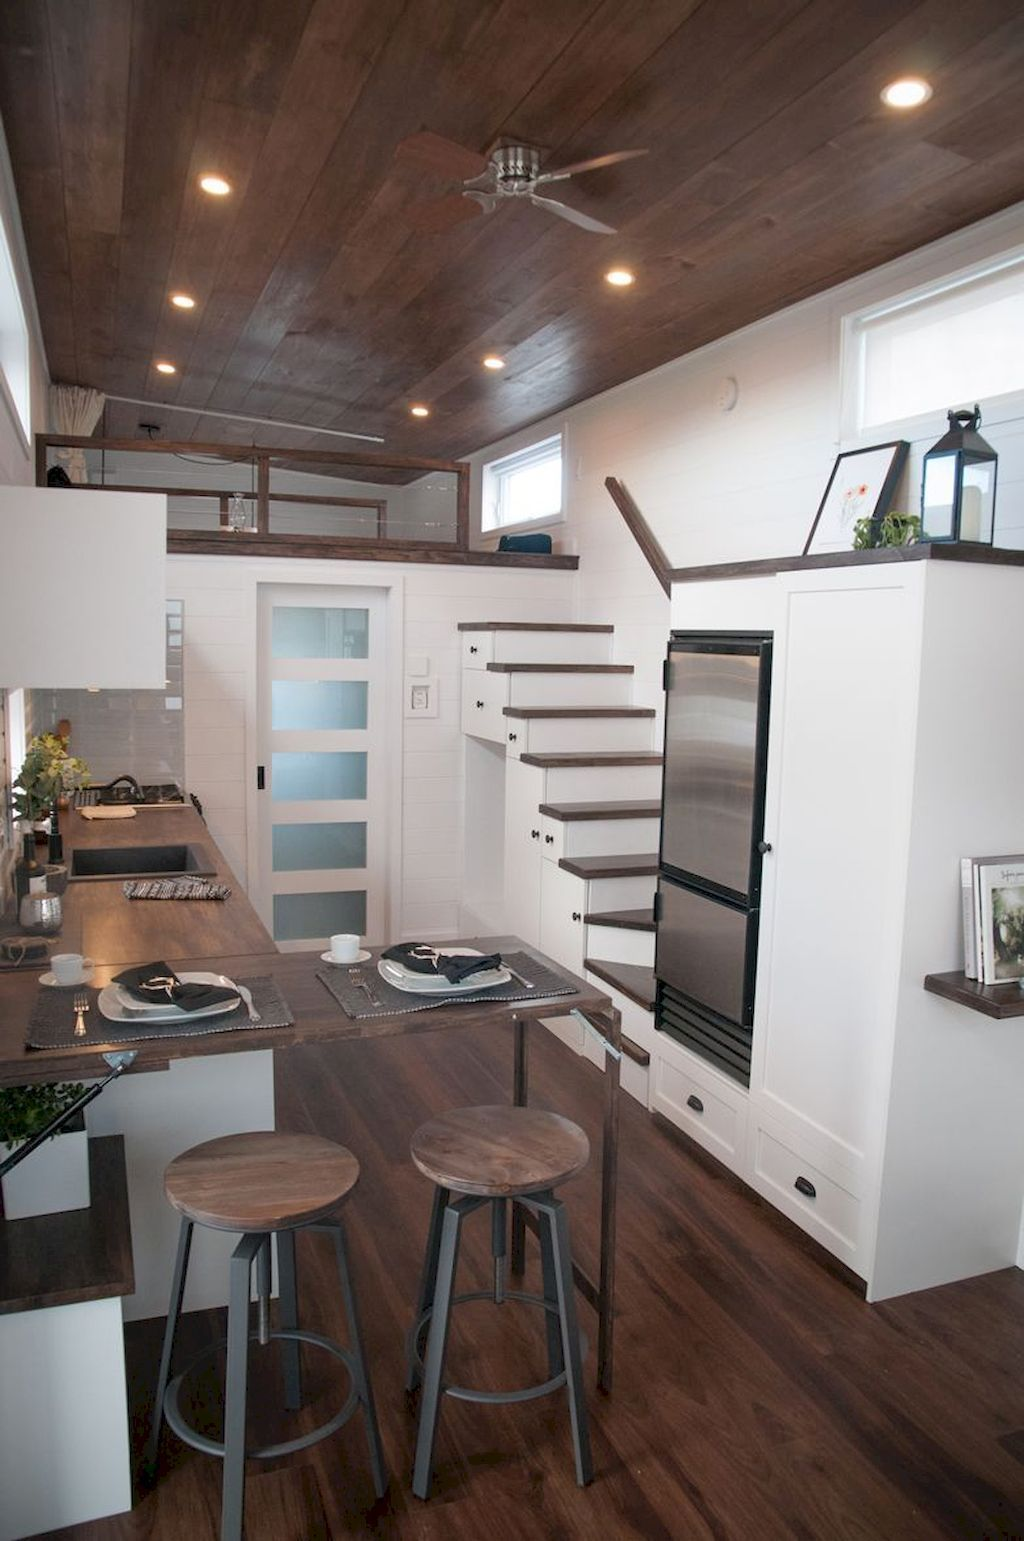 Clever tiny house kitchen decor ideas (50) & Clever tiny house kitchen decor ideas (50)   Tiny House Kitchens ...